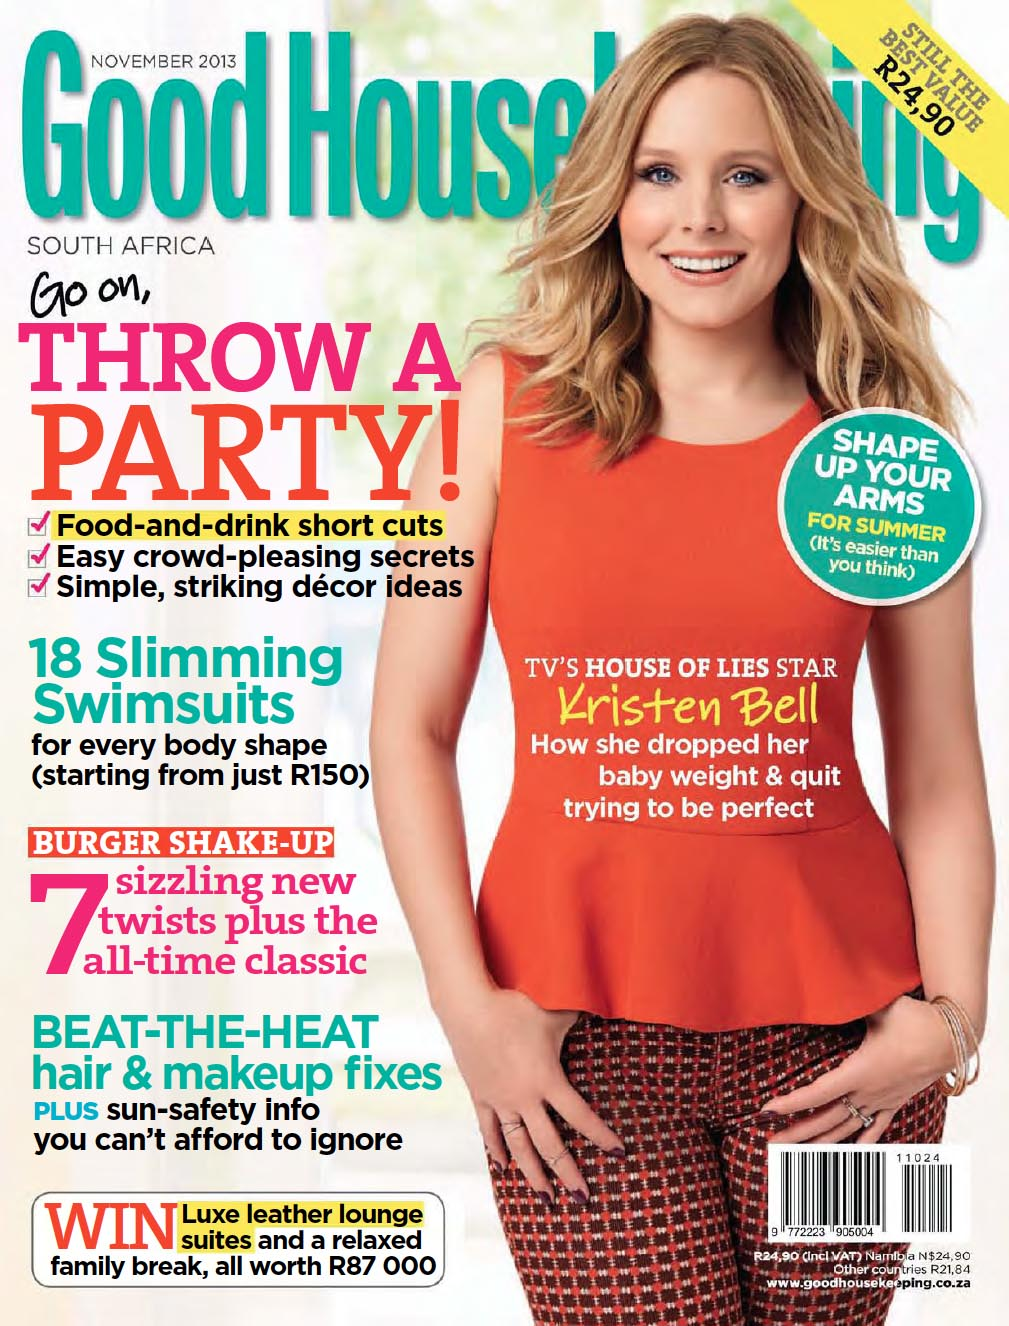 Good housekeeping goeie huishouding south africa for Good house magazine